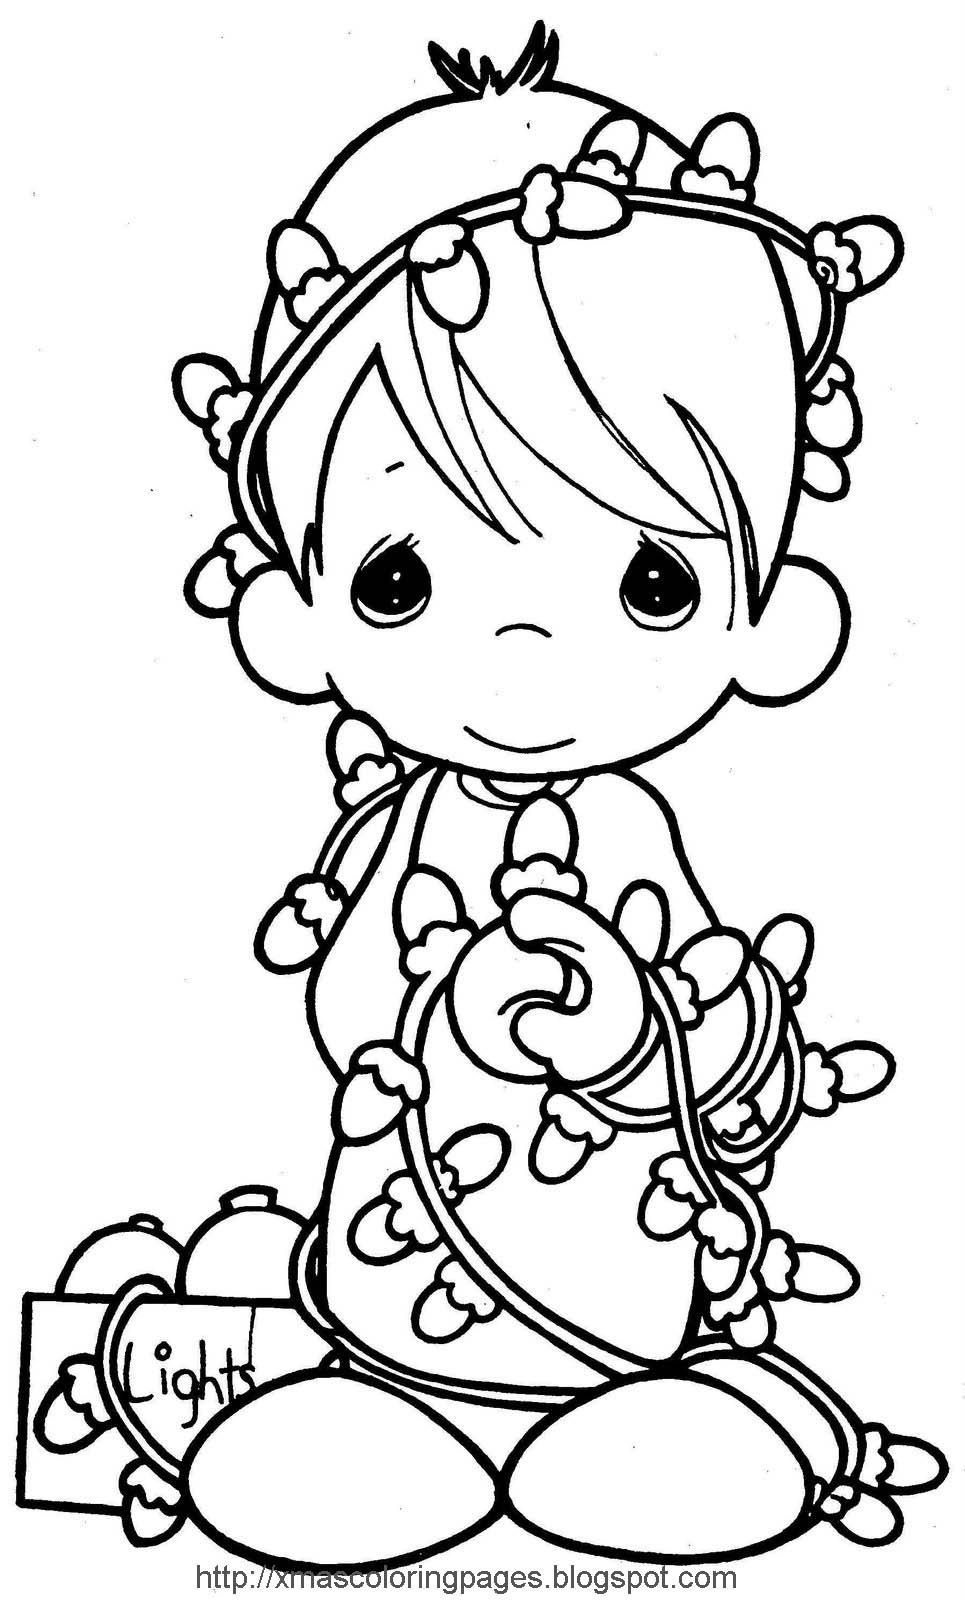 xmas coloring pages XMAS COLORING PAGES: ANGEL COLORING PAGE | Color sheets | Precious  xmas coloring pages